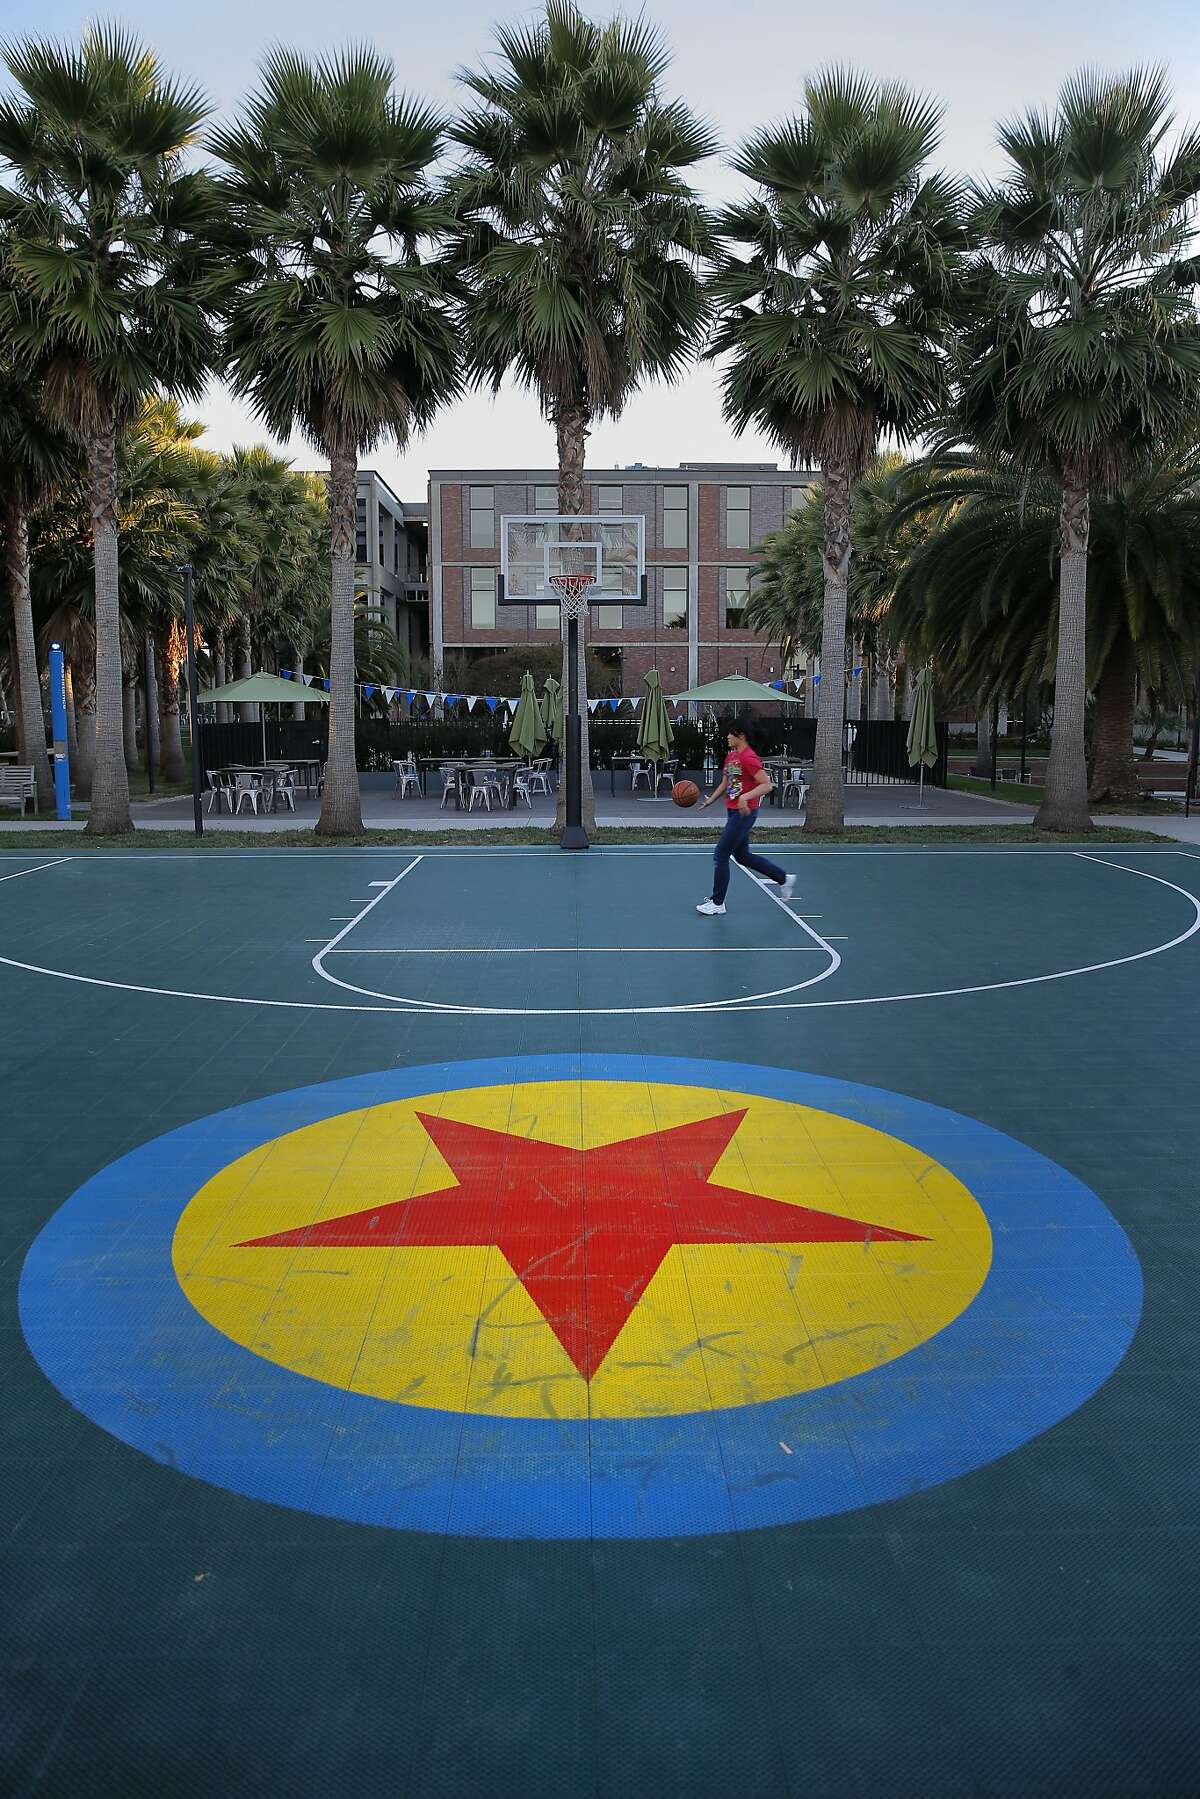 The outdoor basketball court has the Luxo Ball design in center court at the headquarters of the Pixar Animation Studios in Emeryville, Calif., on Thurs. November 19, 2015.